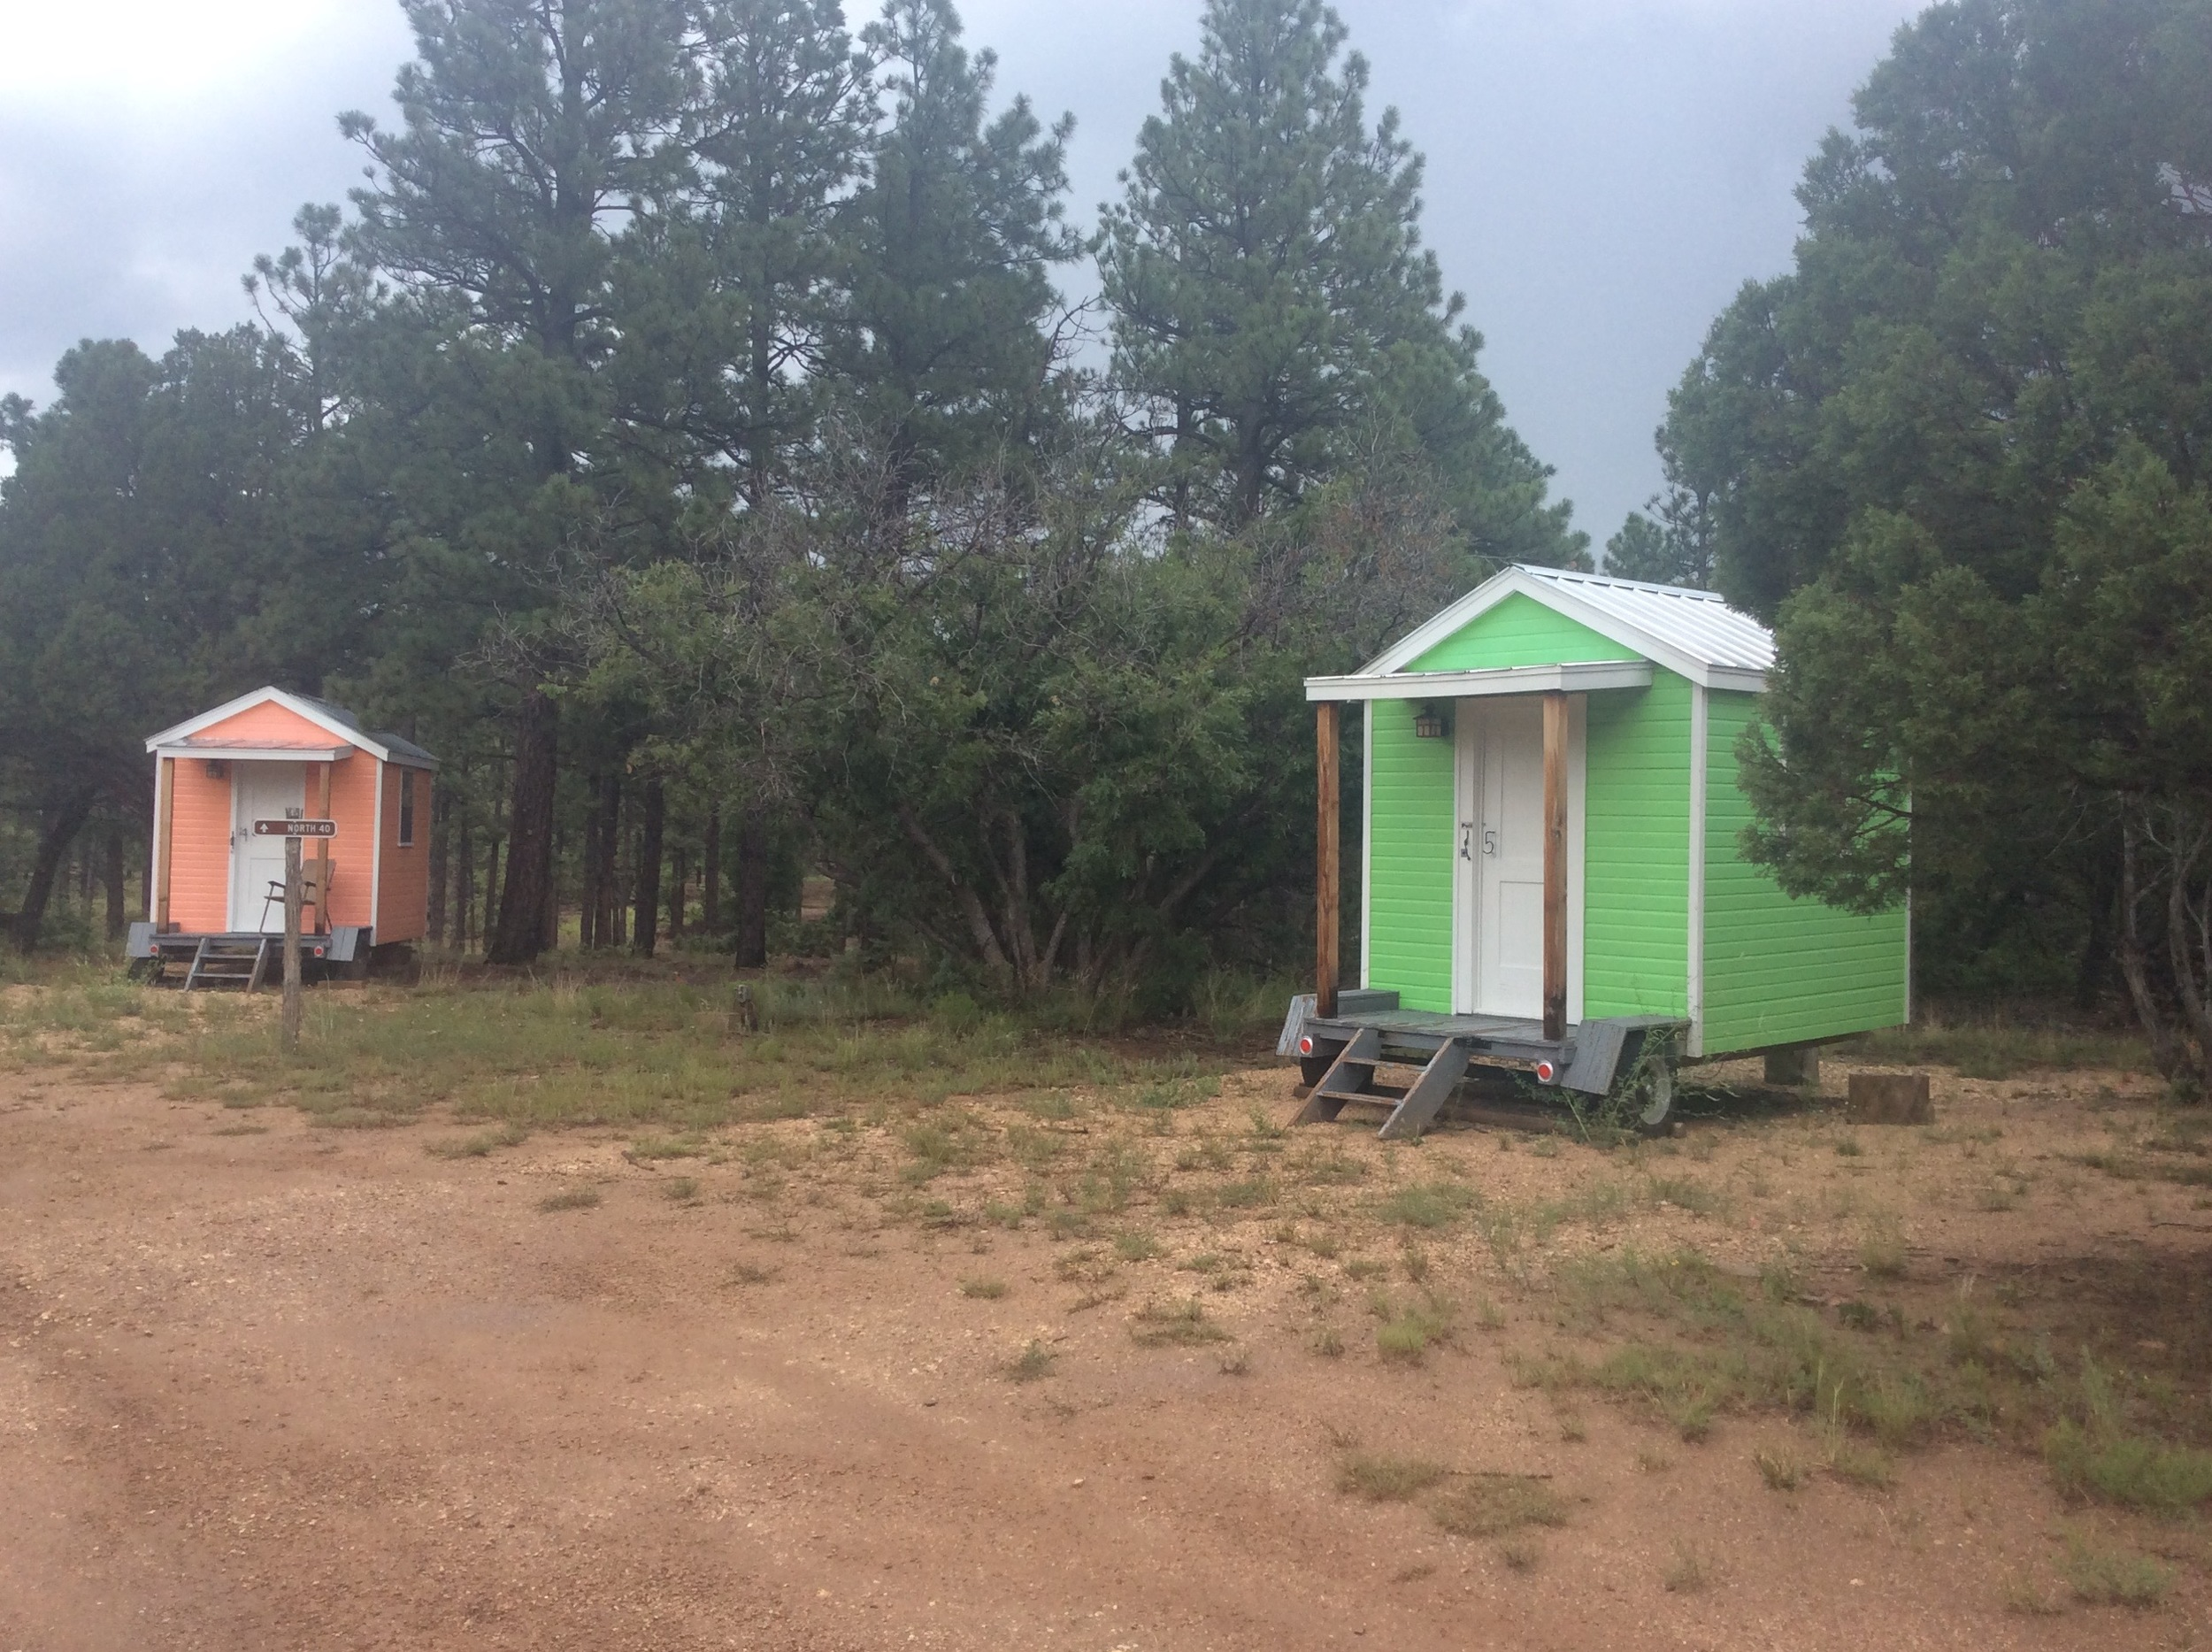 Mini Cabins are circled around the campfire area. Indoor solo and double rooms next to dorm style bathrooms are available, too.